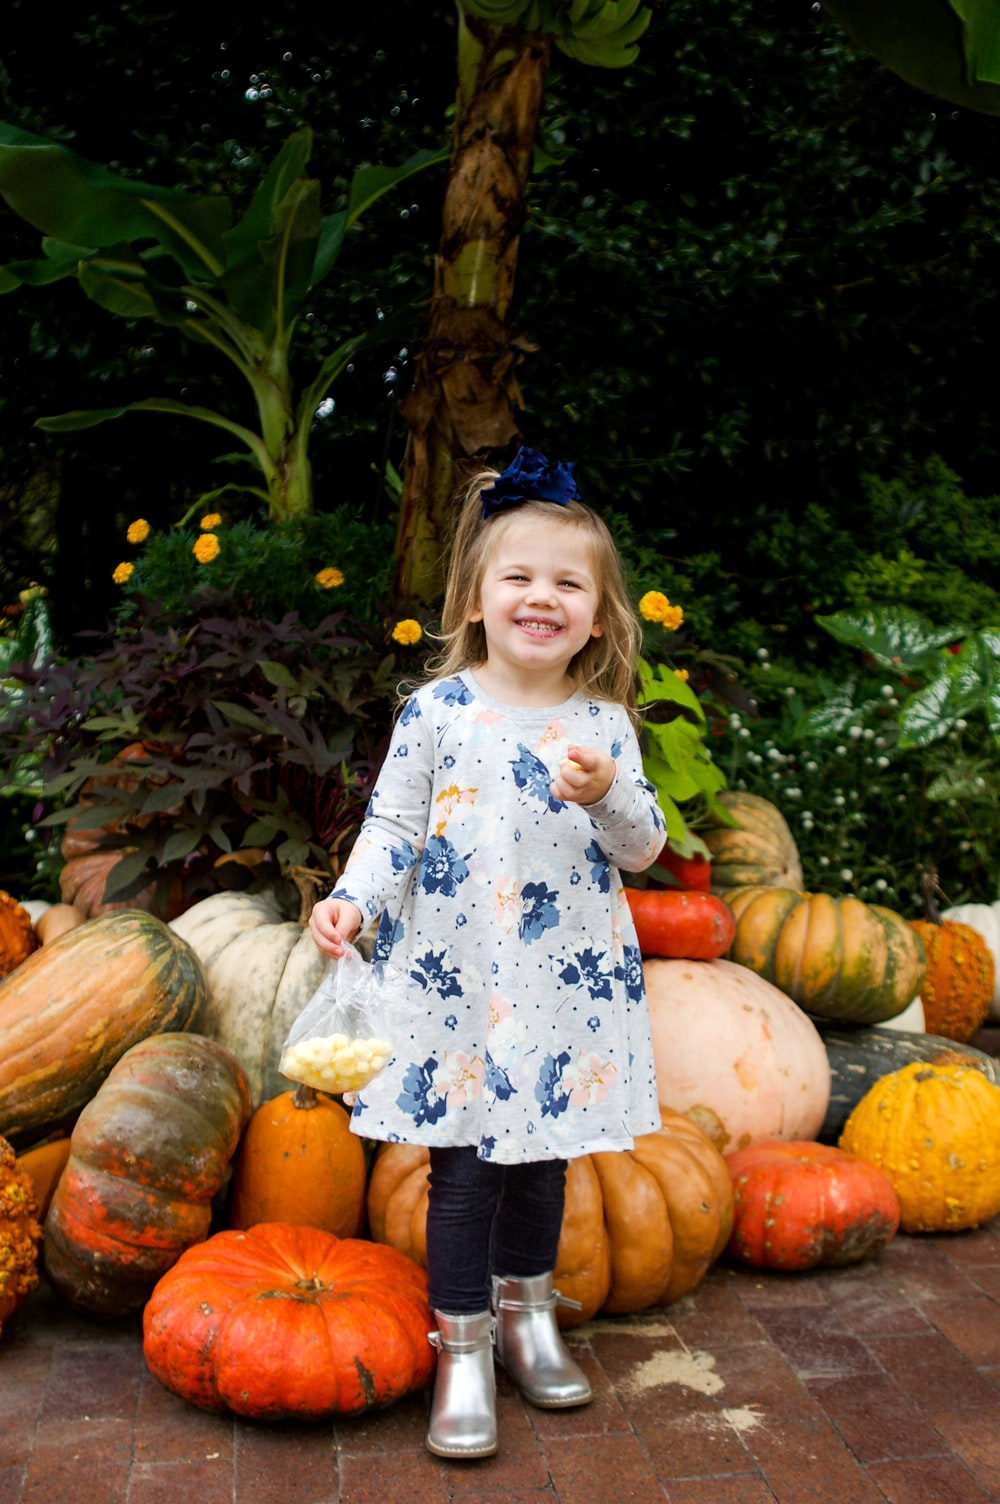 girl in white and blue floral dress standing on pumpkin field during daytime